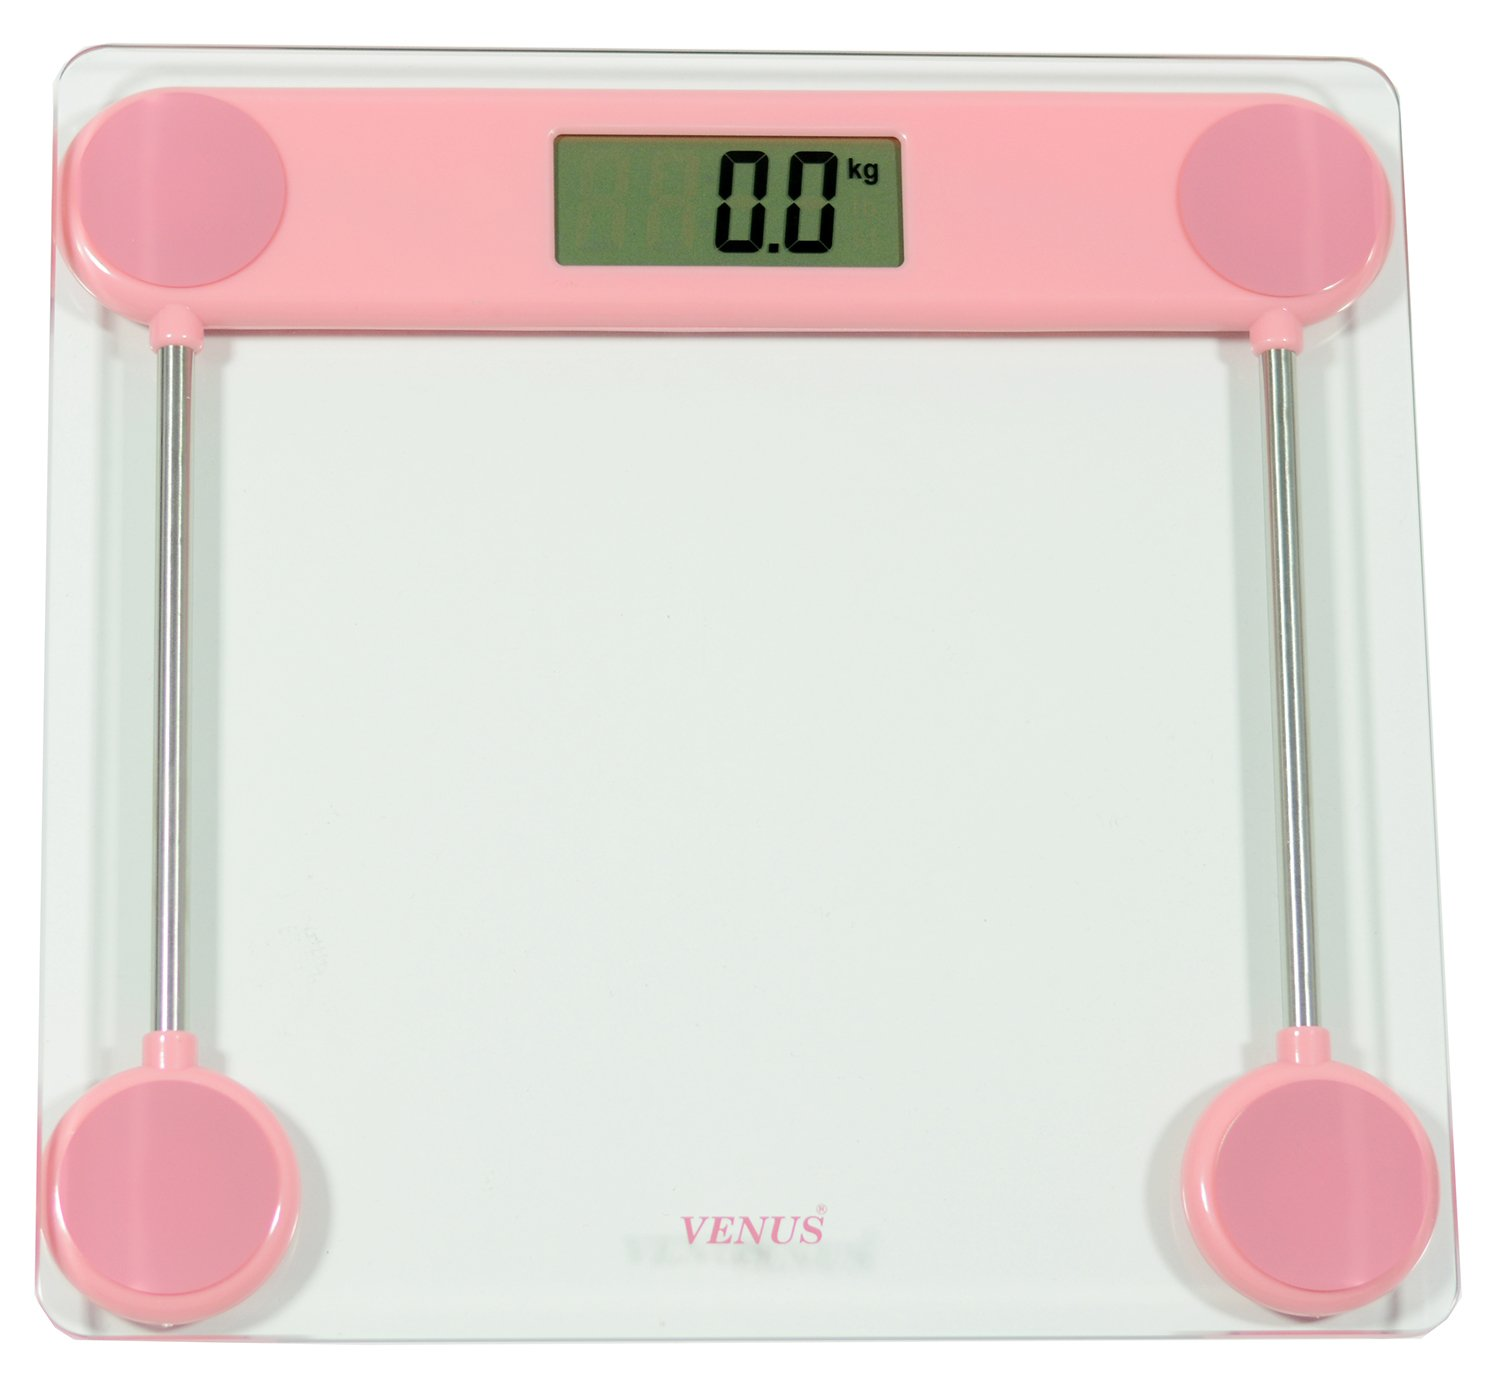 Venus Pink Personal Electronic Digital LCD Weight Machine Body Fitness Weighing Bathroom Scale Weight Machine available at Amazon for Rs.799